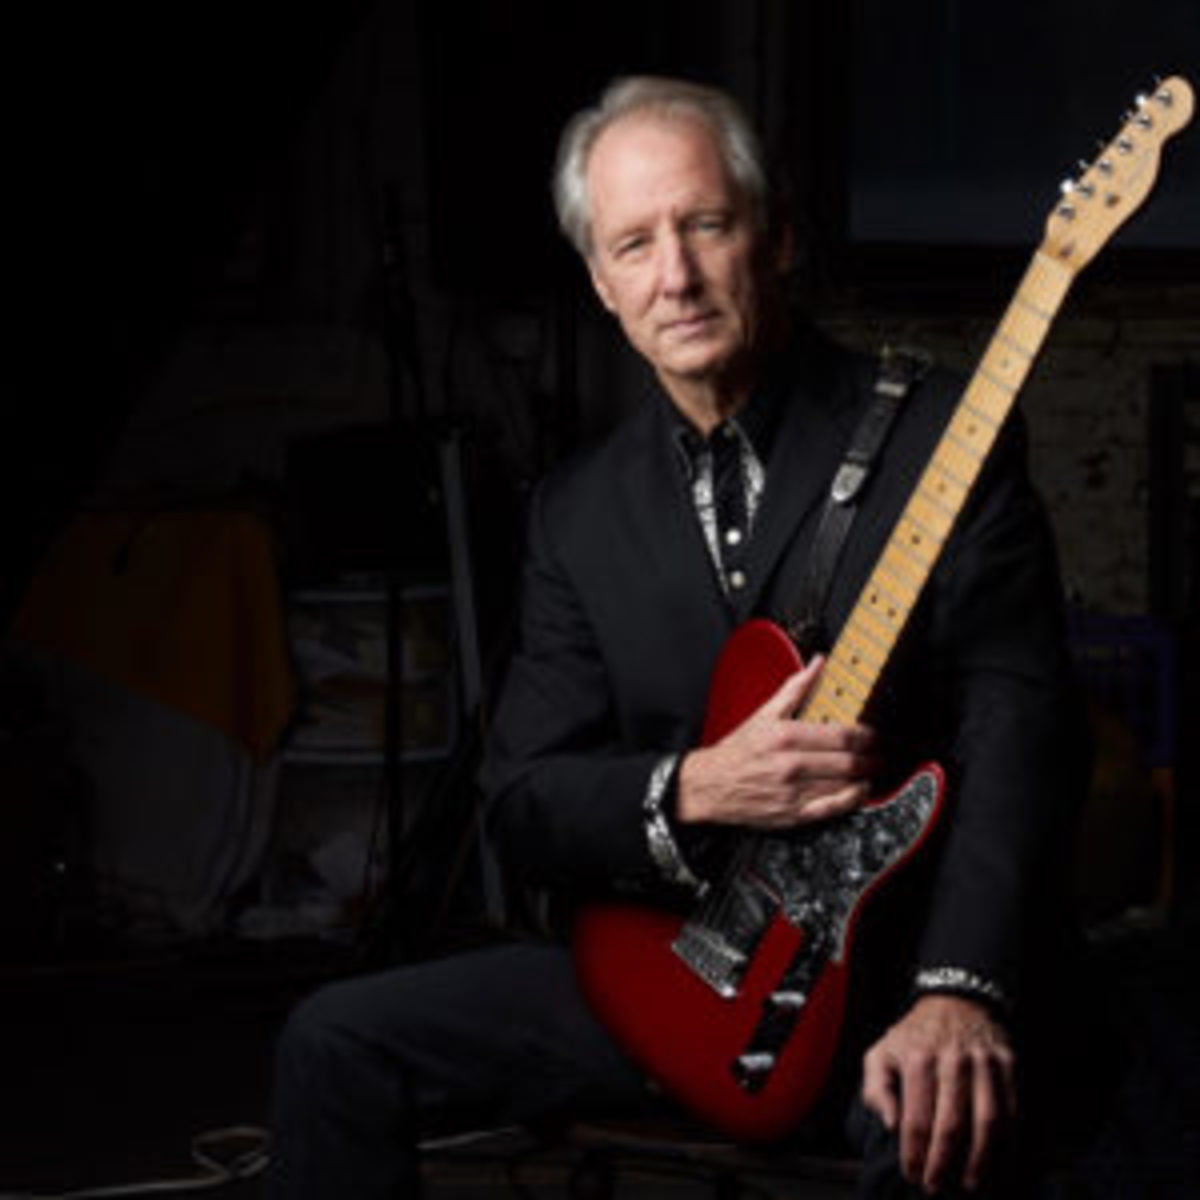 Chuck McDermott with Red Tele. Photo by Kelly Davidson.